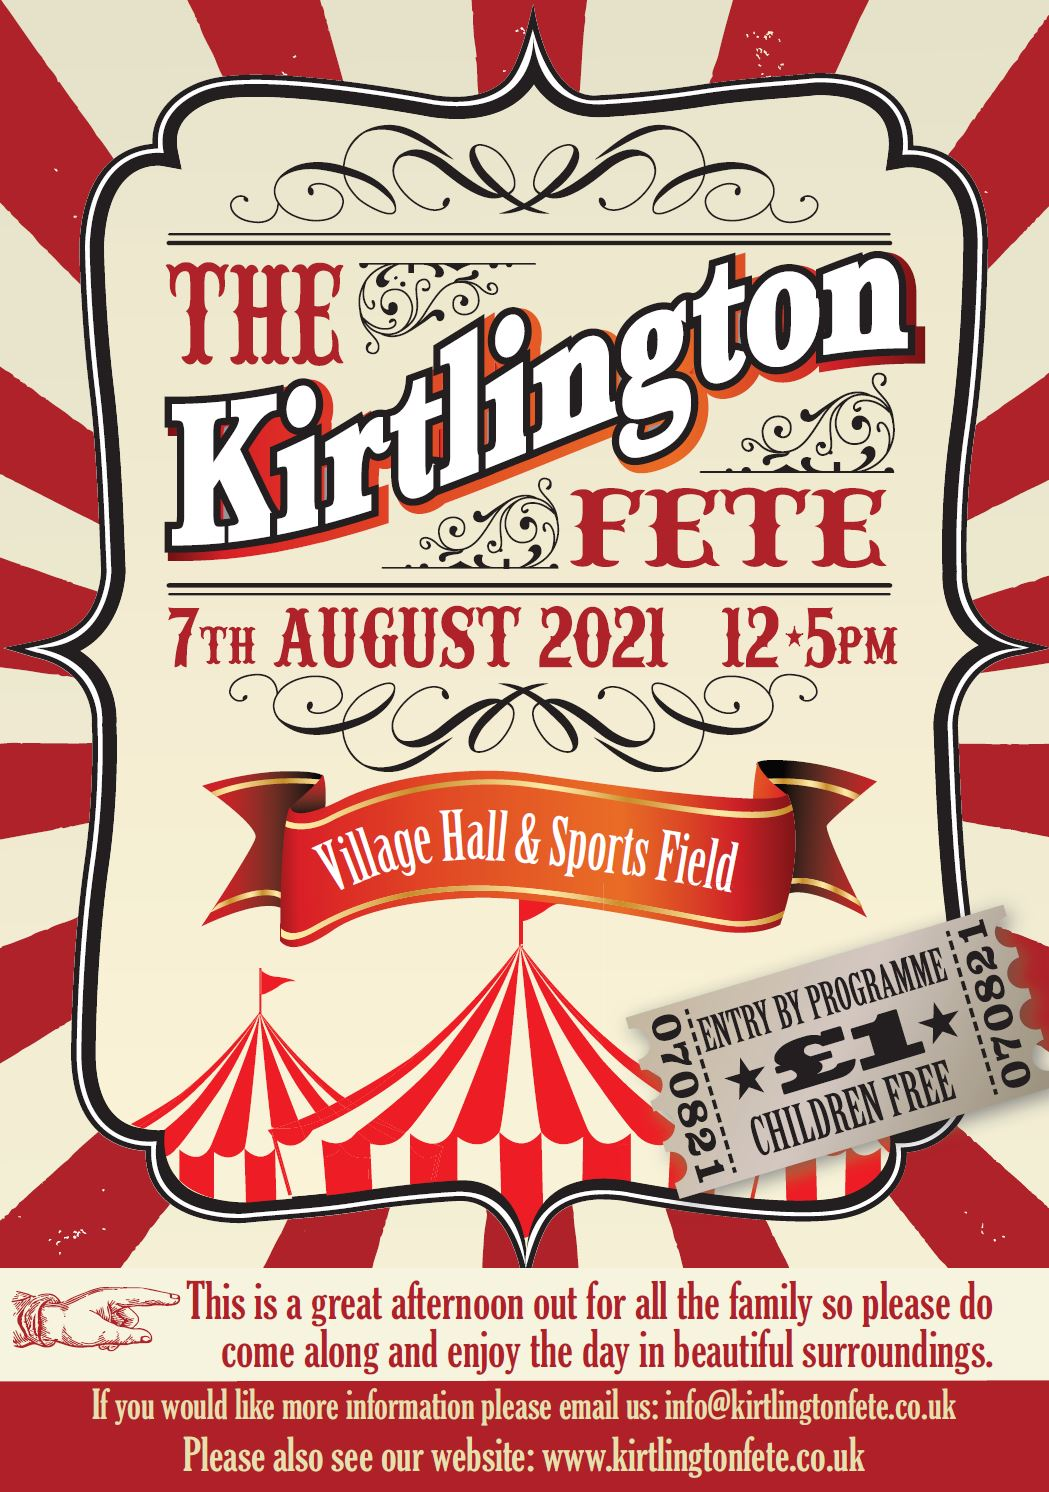 Fete poster image for 20210807